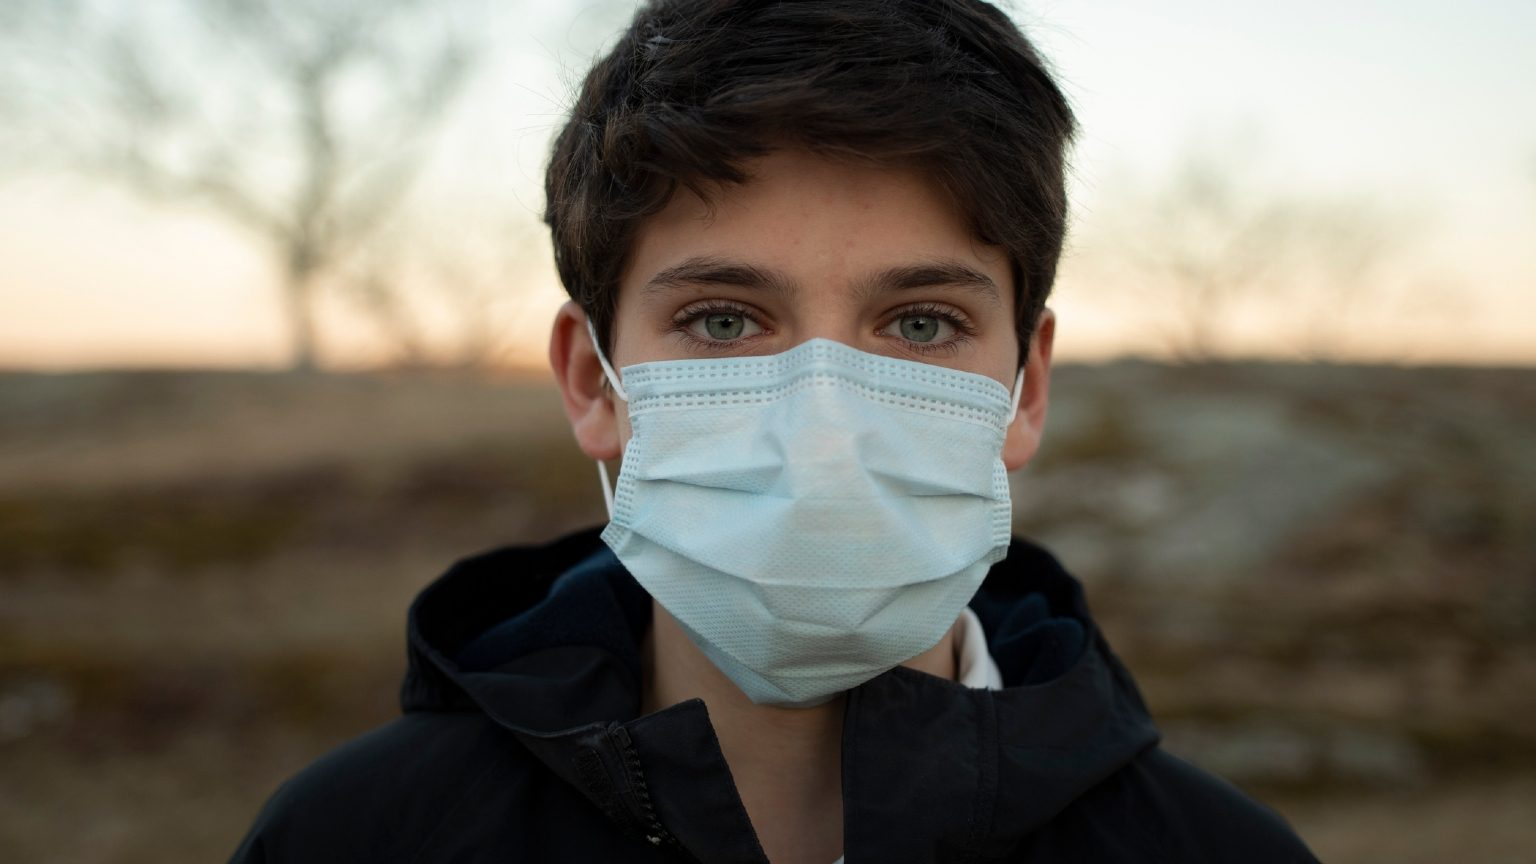 boy wearing face masks